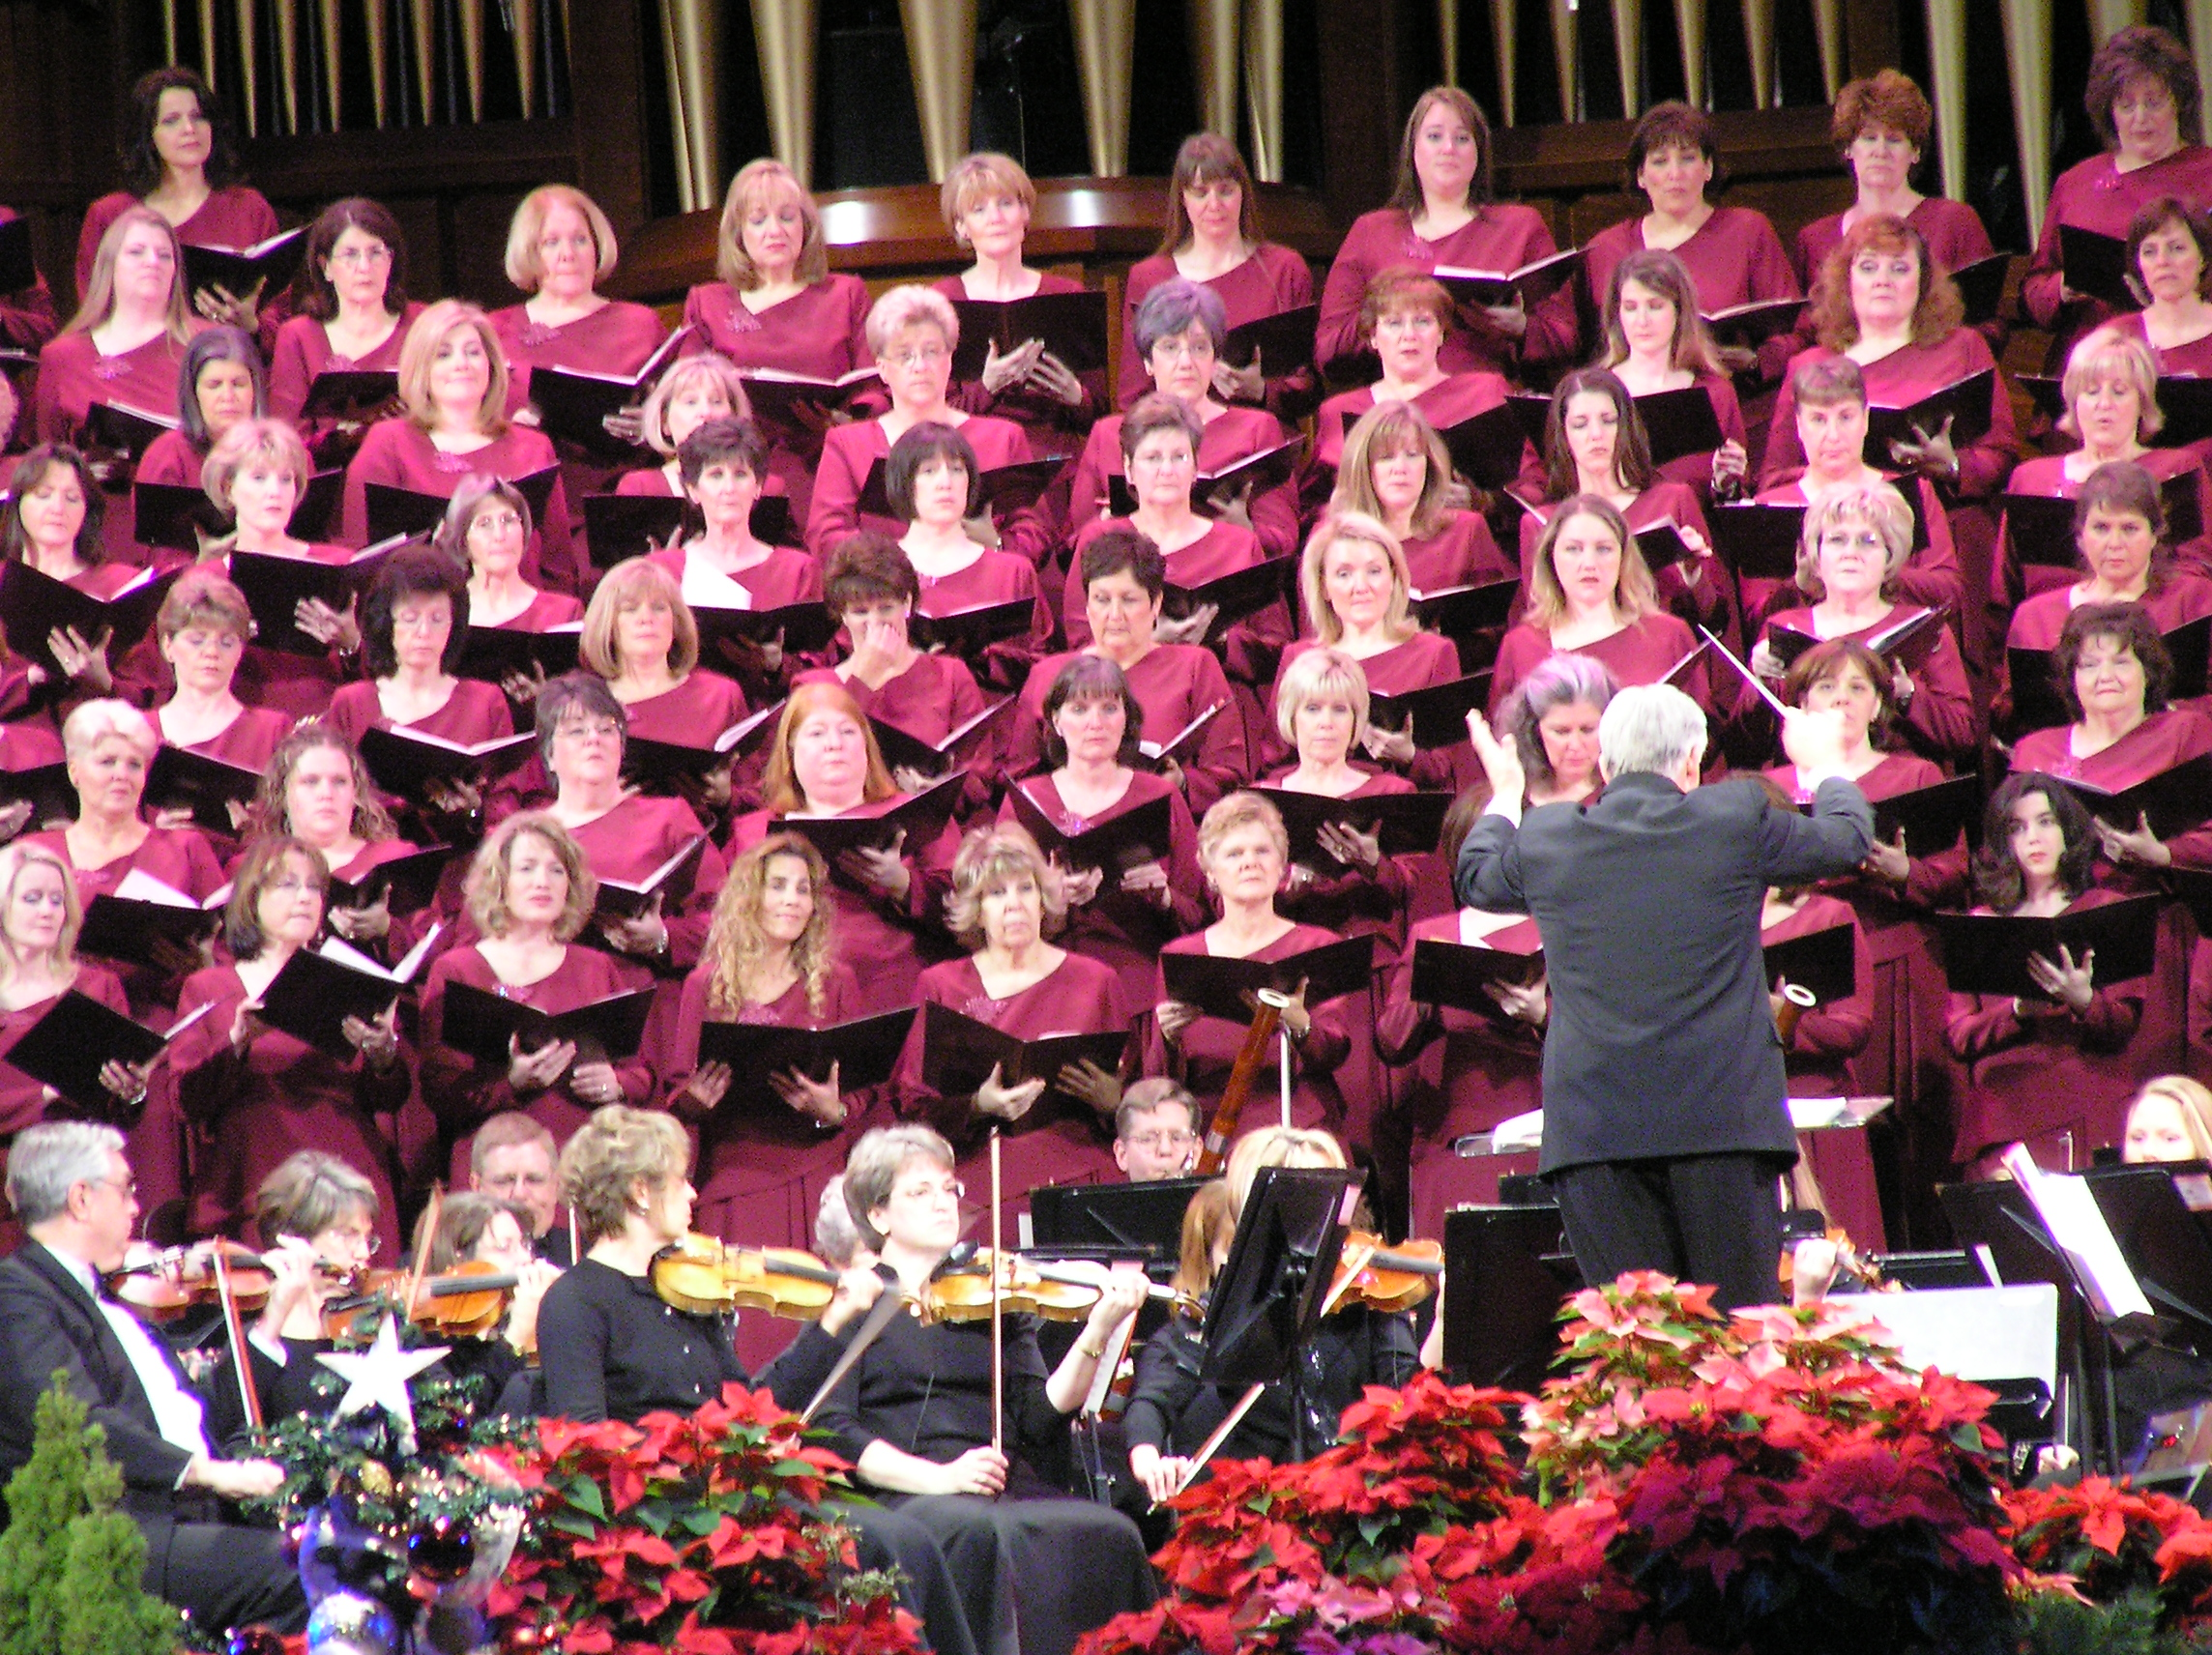 The Choir and Orchestra at Temple Square performing on December 3, 2005, in the LDS Conference Center under the direction of Craig Jessop